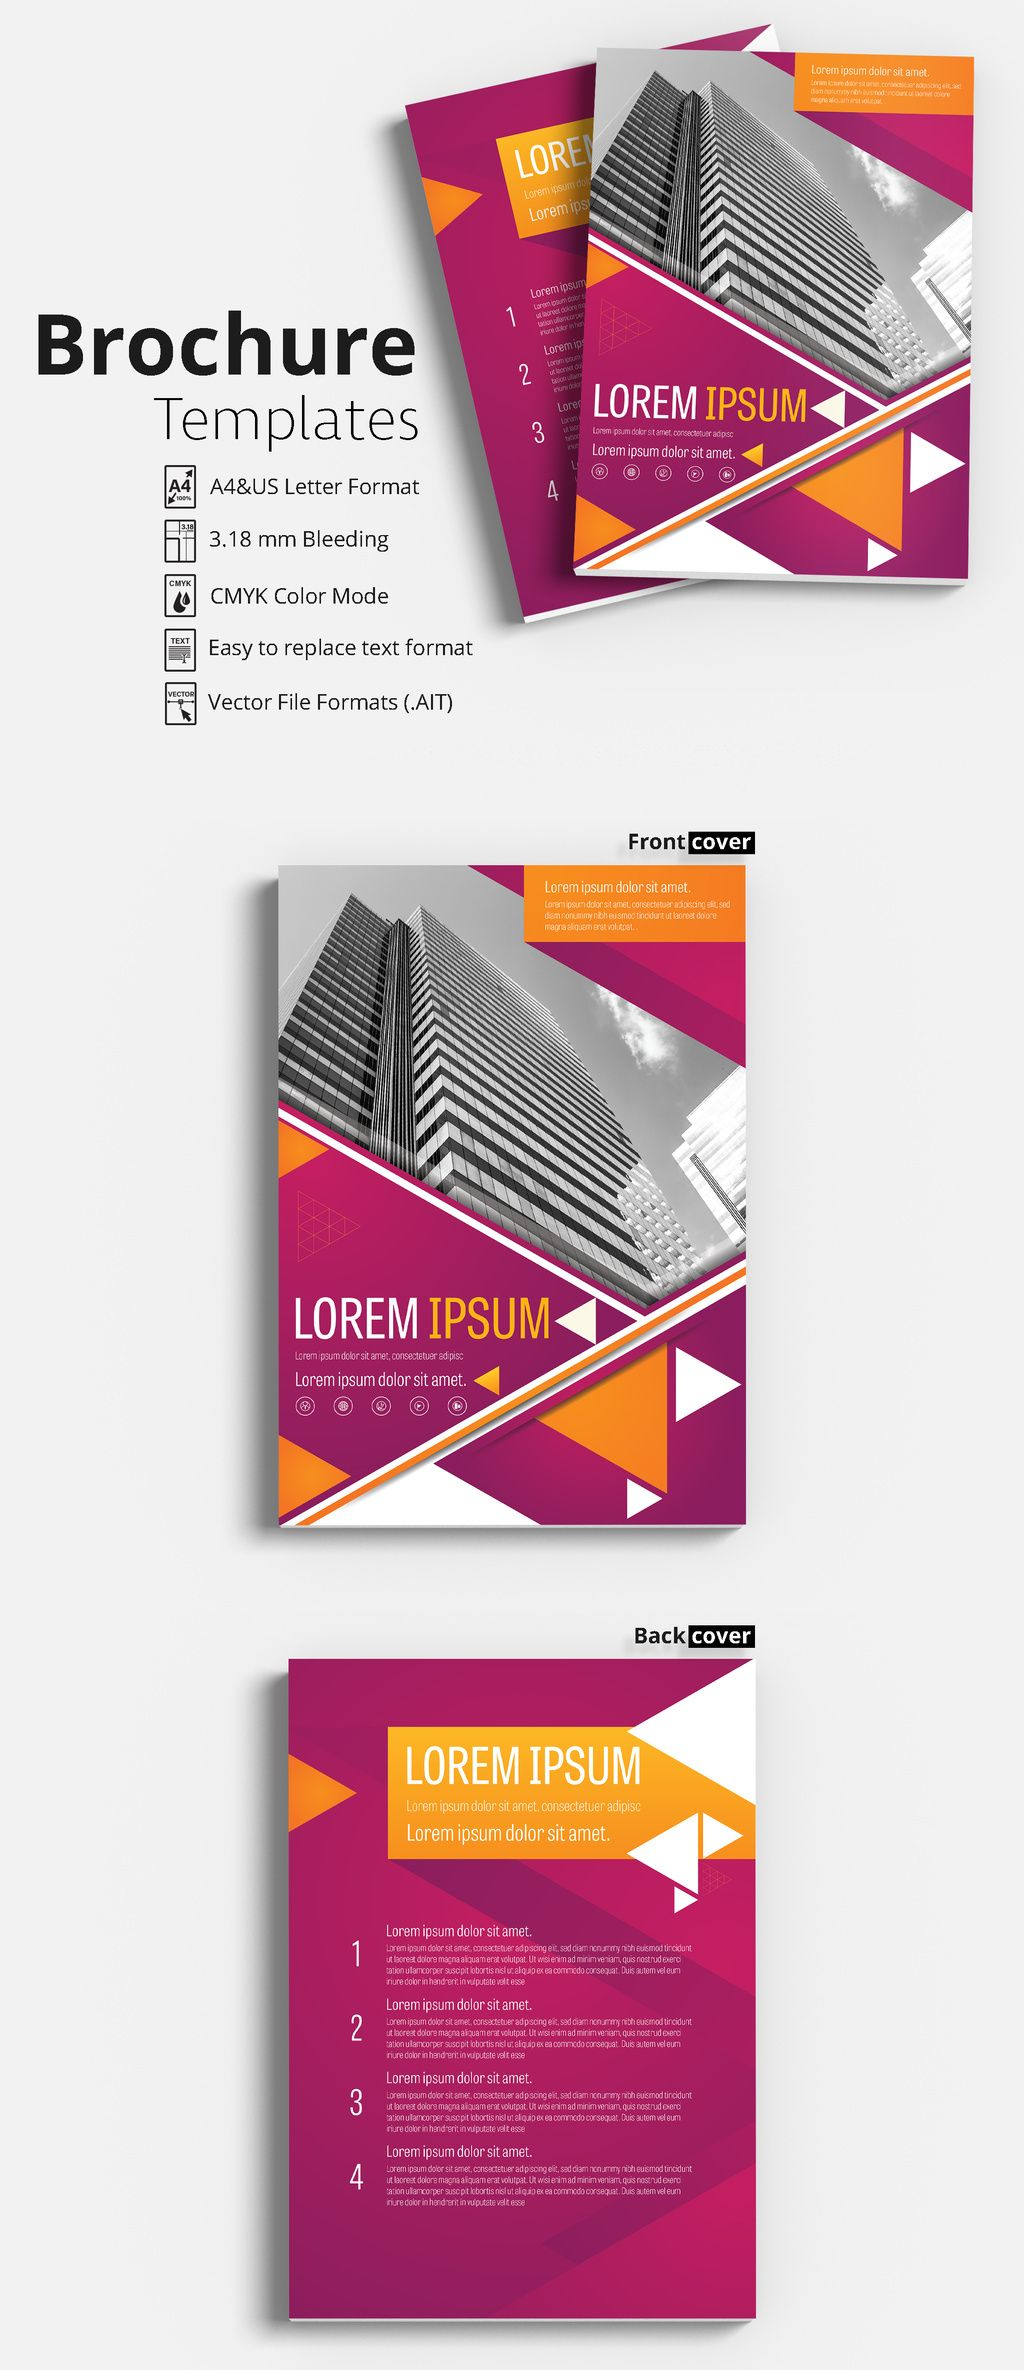 Flyer Brochure Template With Magenta And Orange Accents Flyer